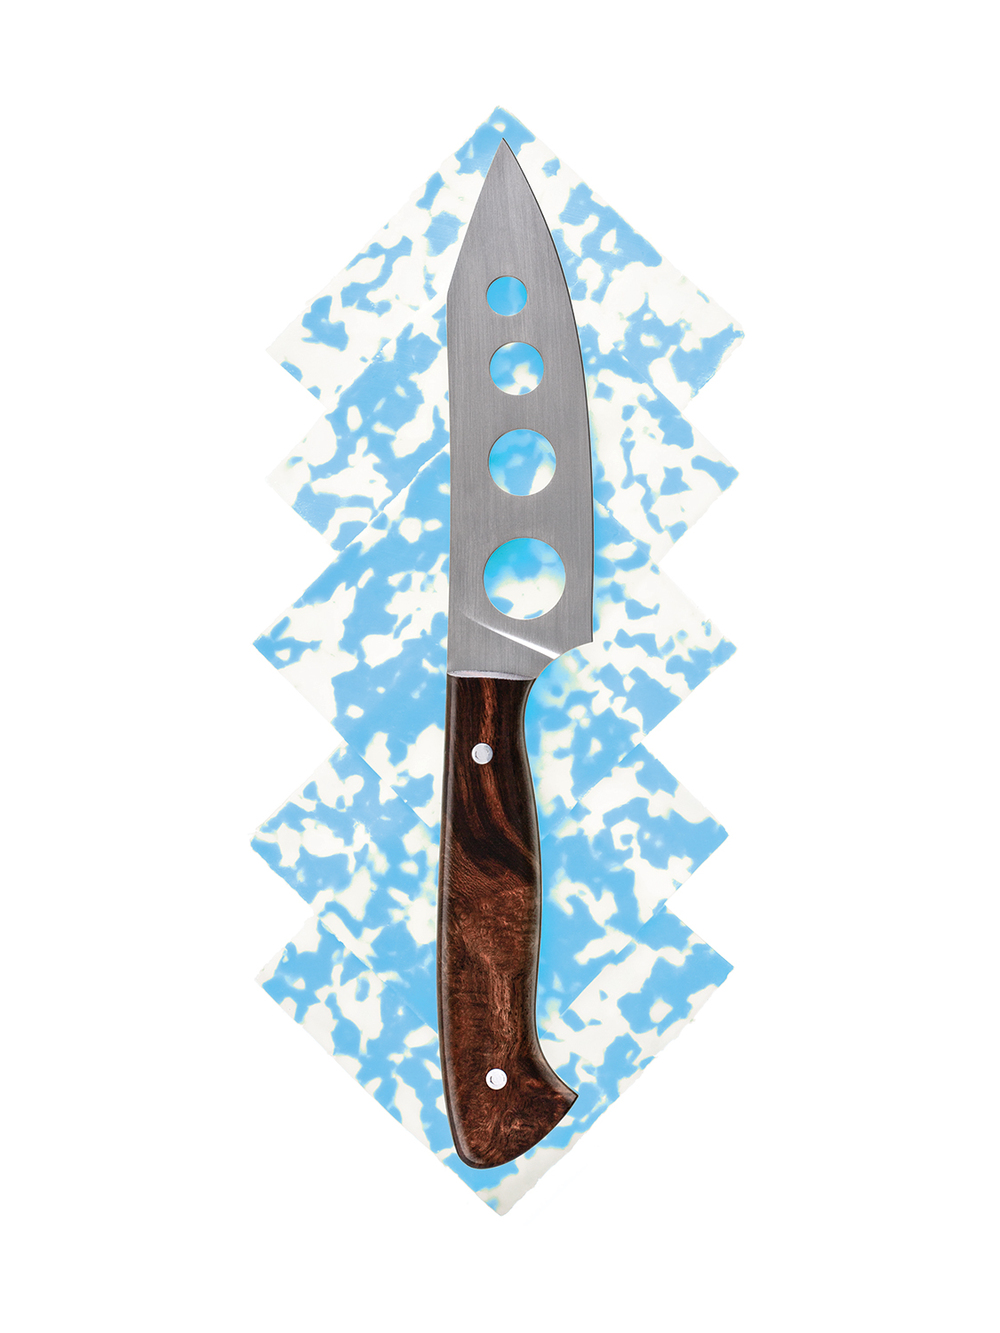 Knives_exex-304-Edit_WEB.jpg